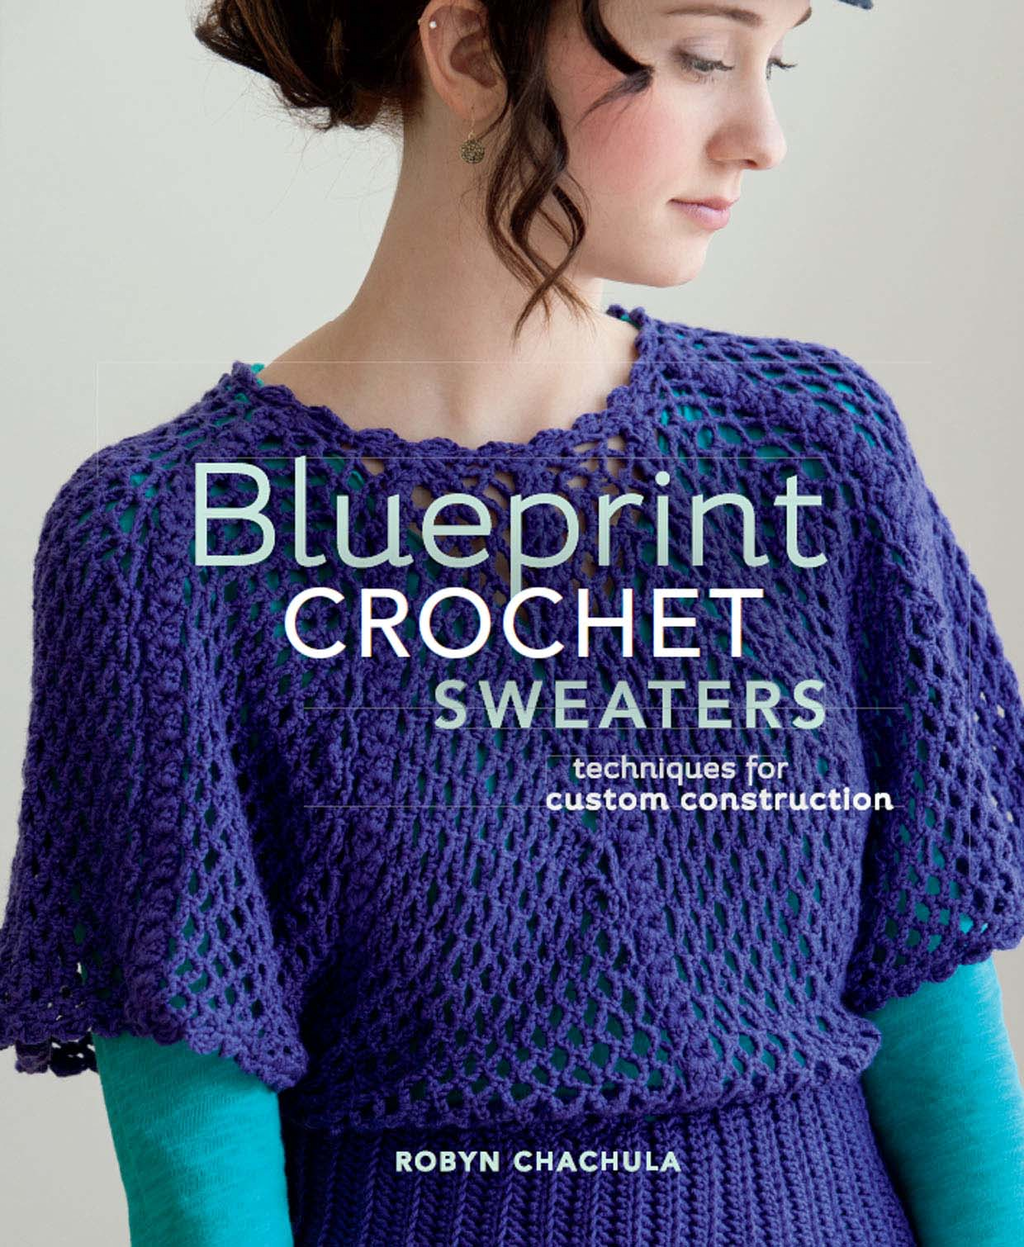 Blueprint Crochet Sweaters Techniques for Custom Construction